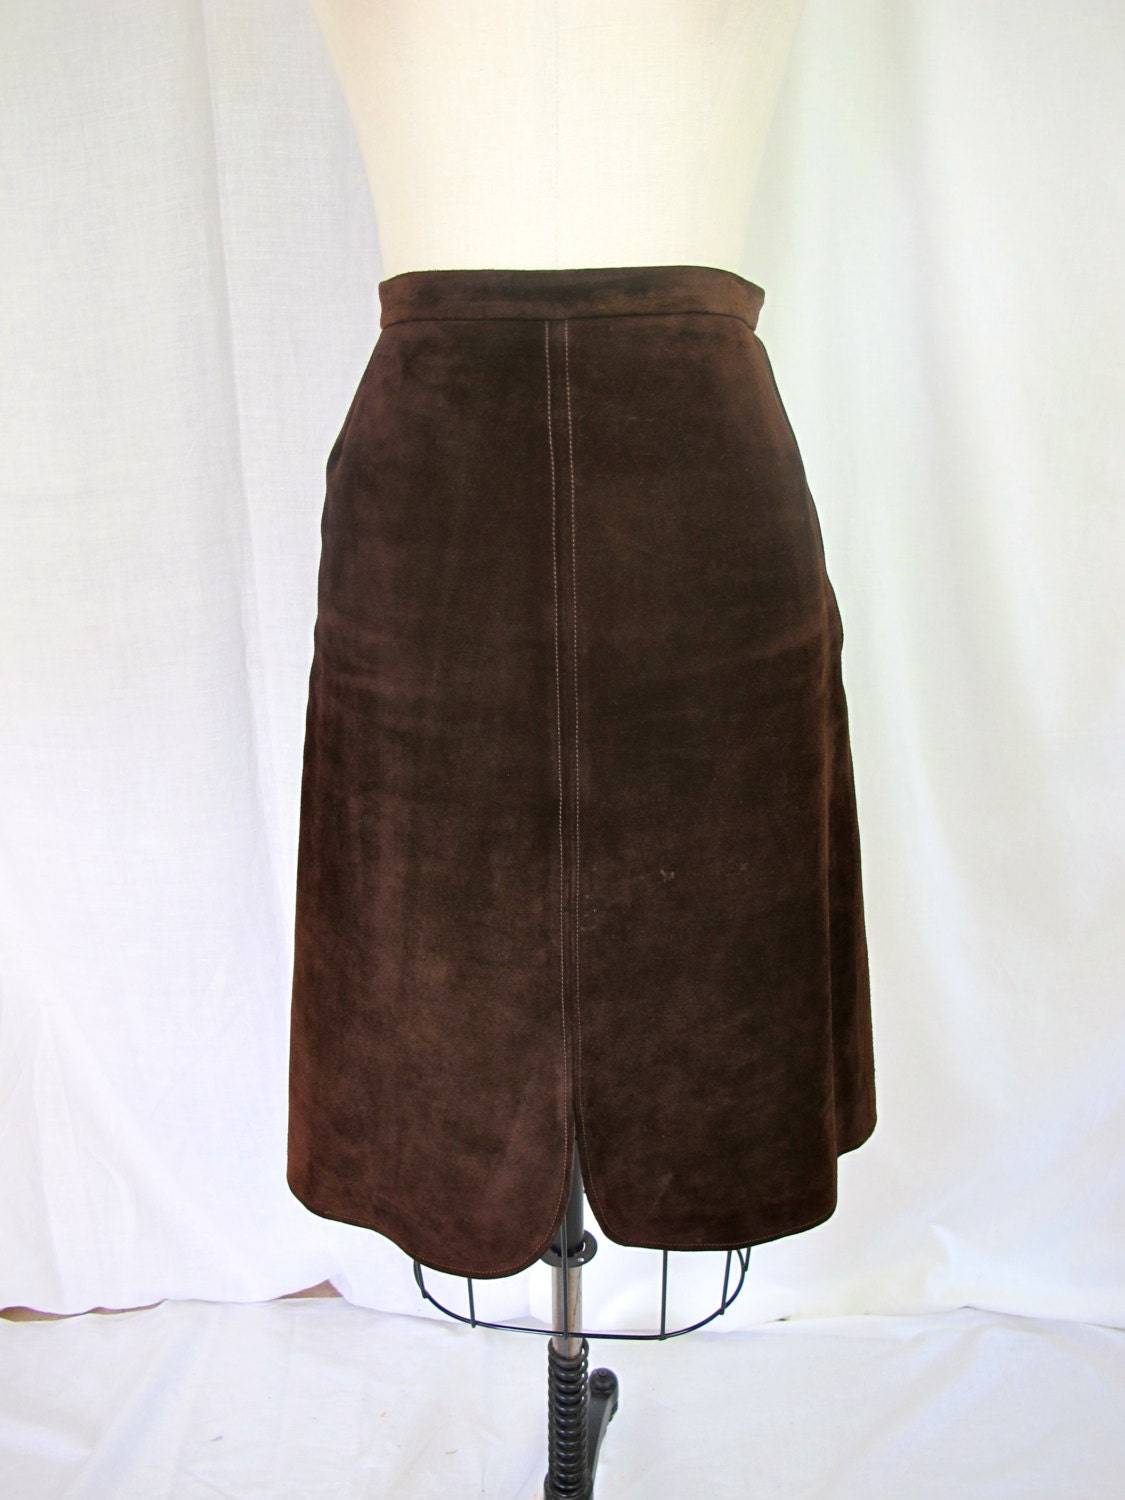 gucci rich brown suede leather skirt